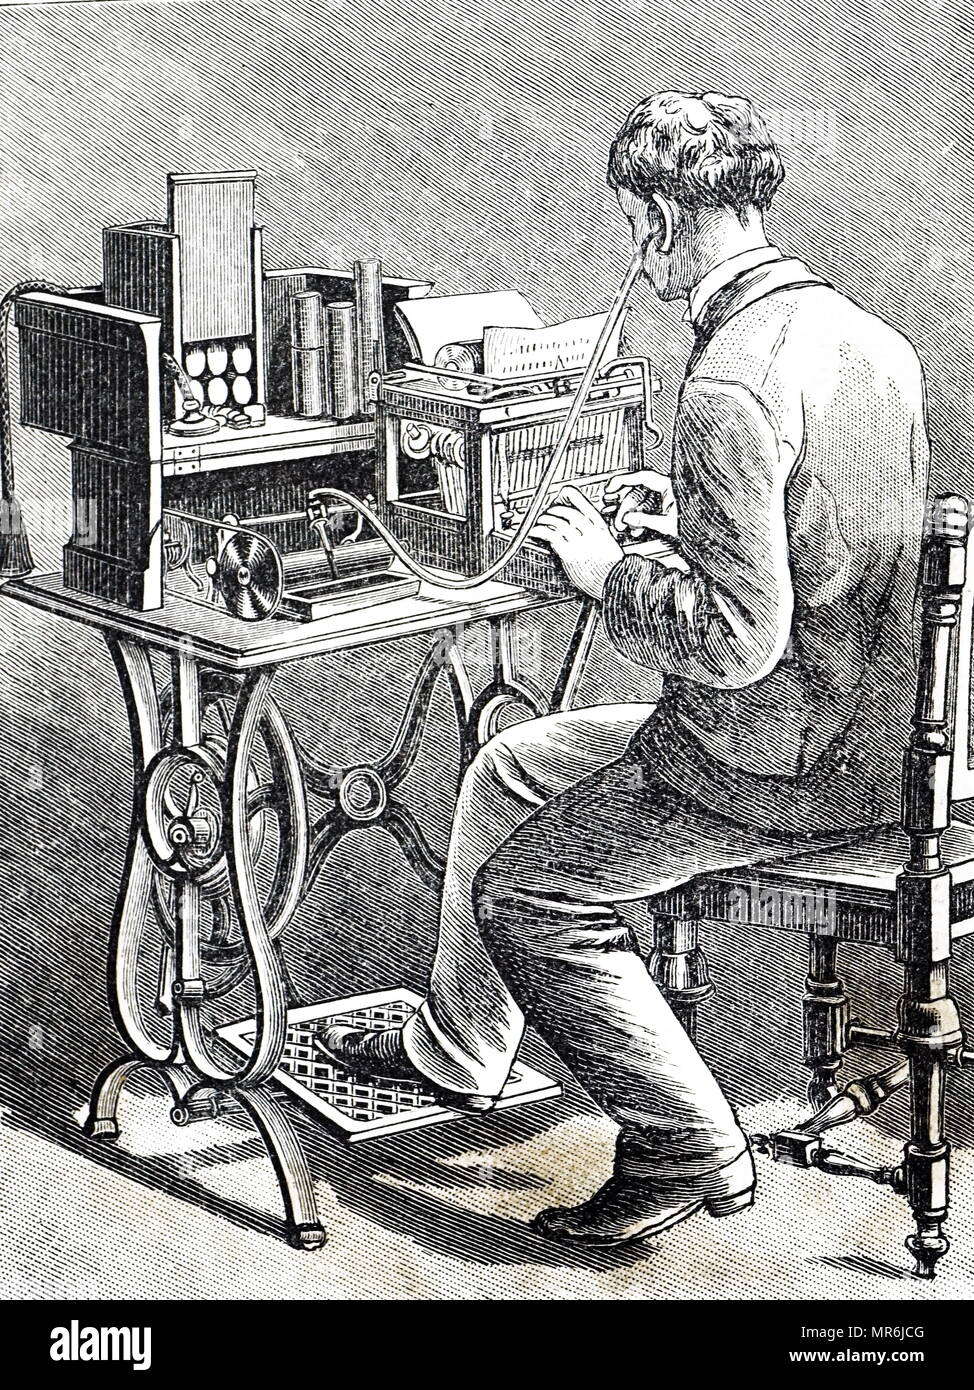 Treadle Stock Photos & Treadle Stock Images - Alamy